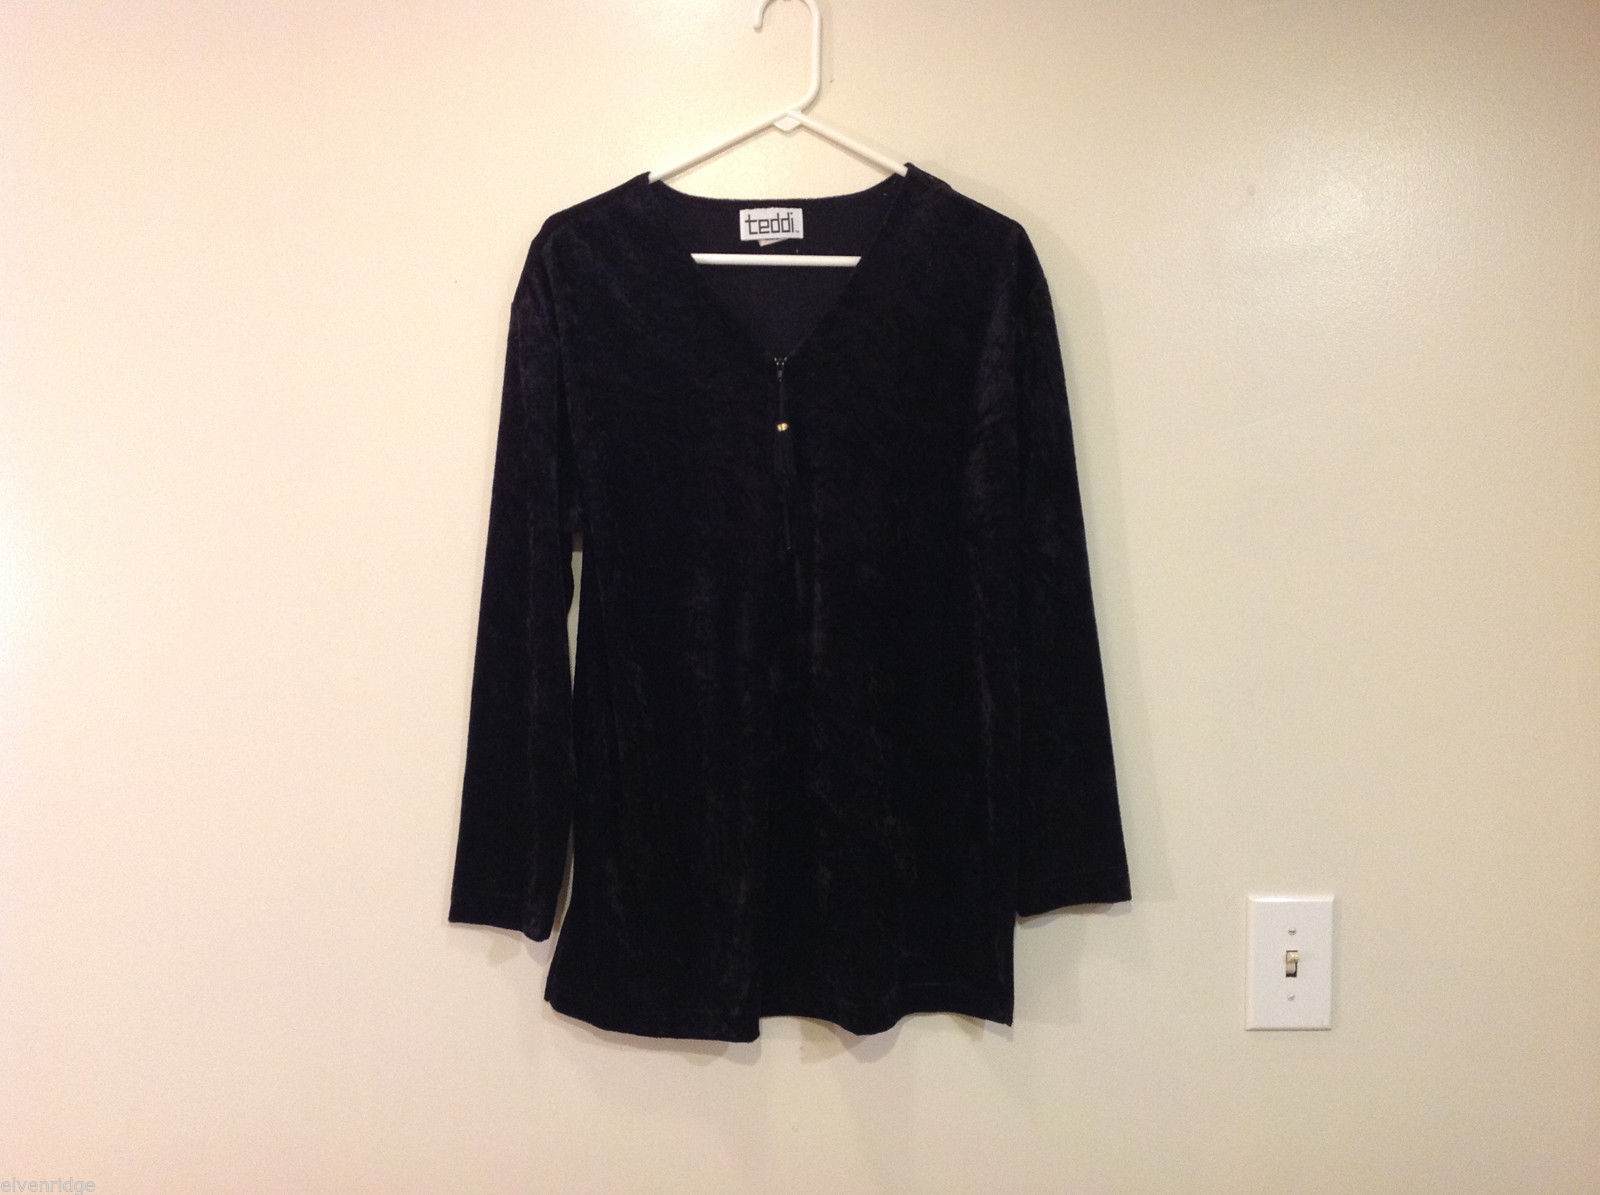 Teddi Black Velvet Ladies Long Sleeve Top Blouse V-Neck Front Zipper, Size M